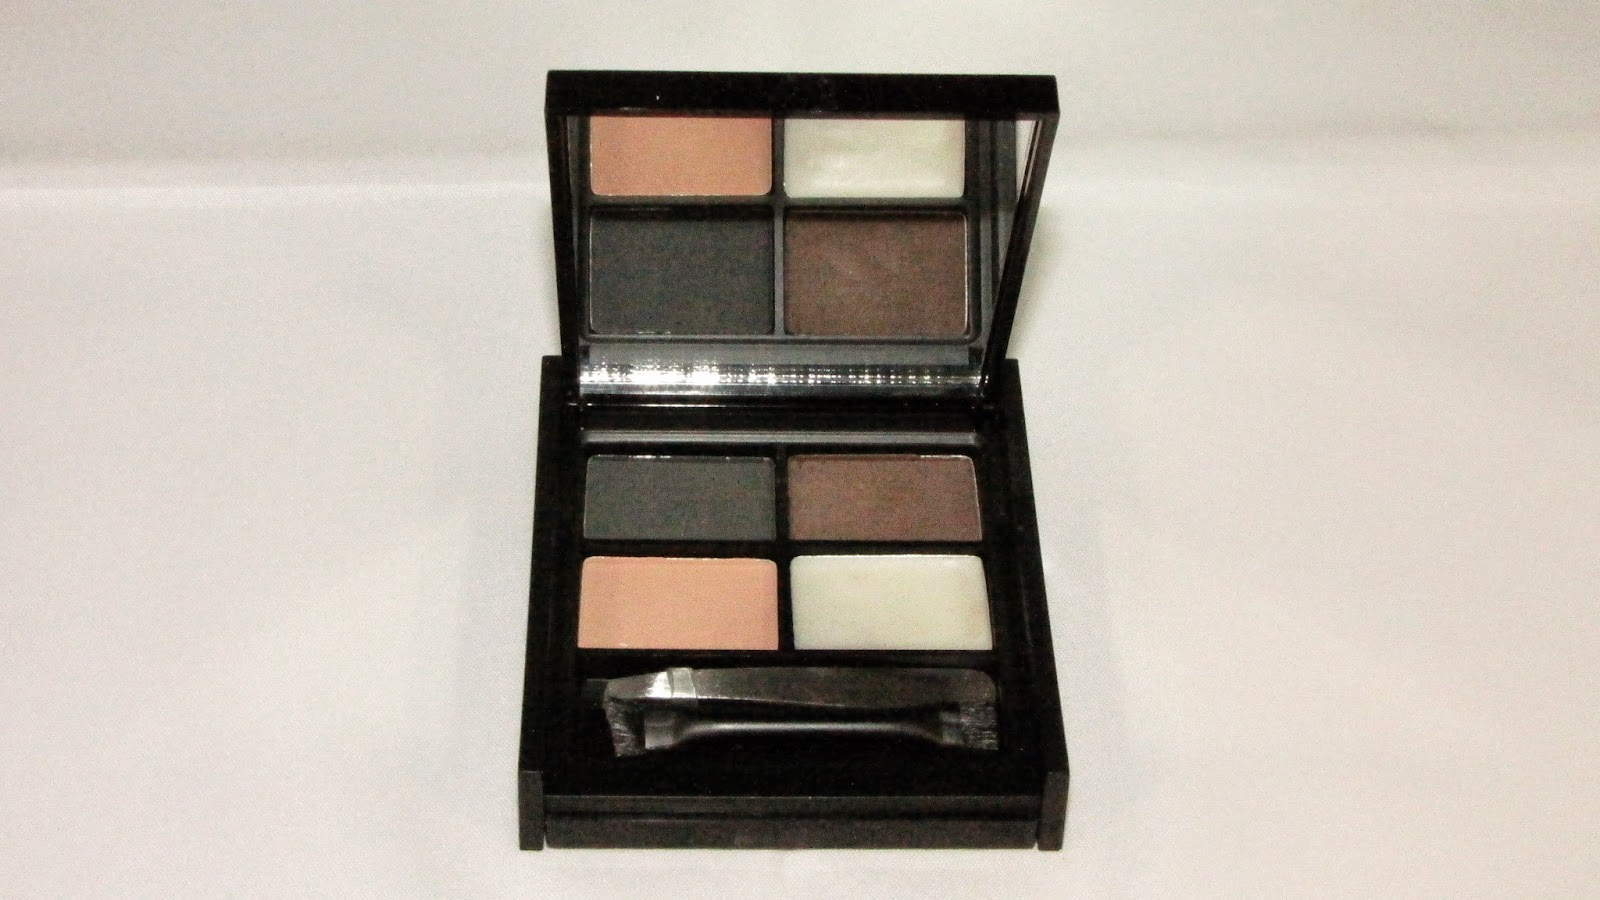 MUA Pro-Brow Ultimate Eyebrow Kit in Dark